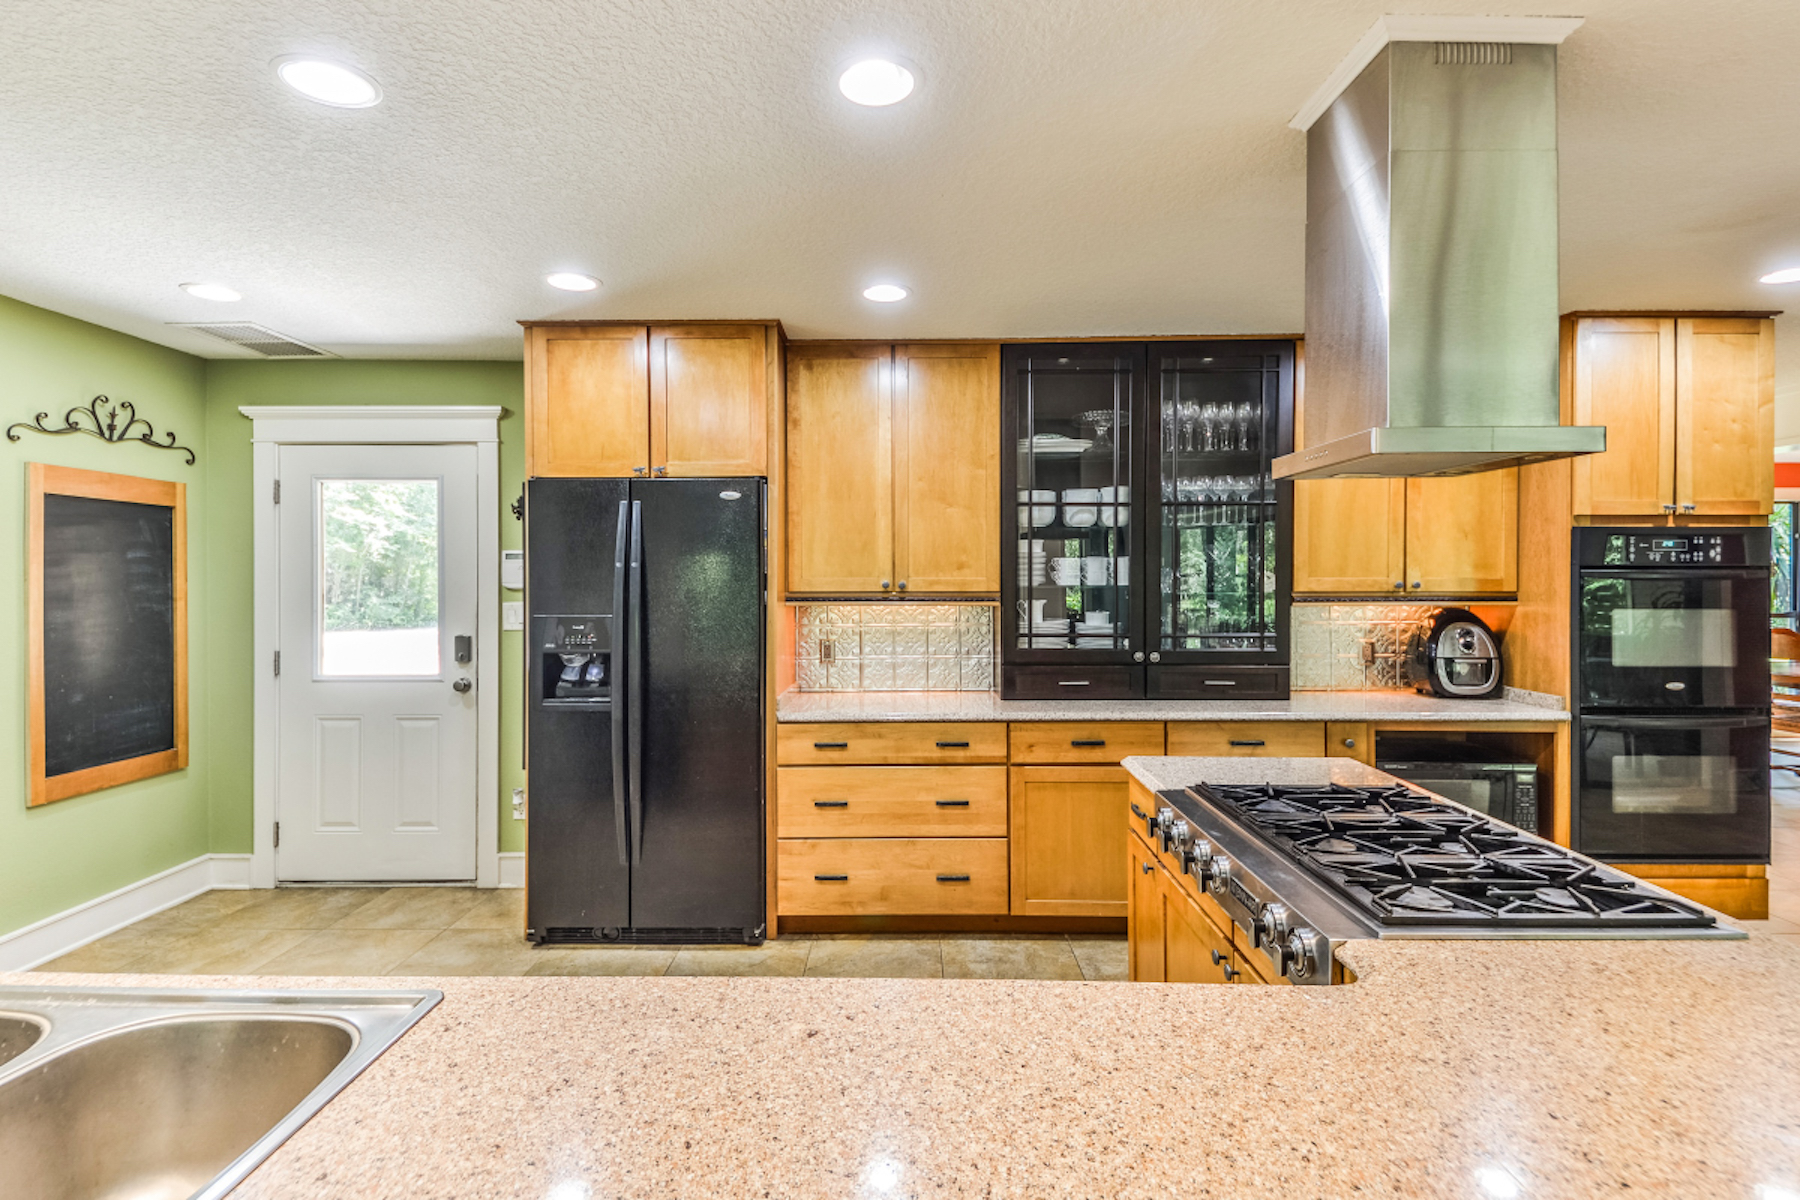 Additional photo for property listing at 1304 Marian Drive  Fernandina Beach, Florida 32034 United States